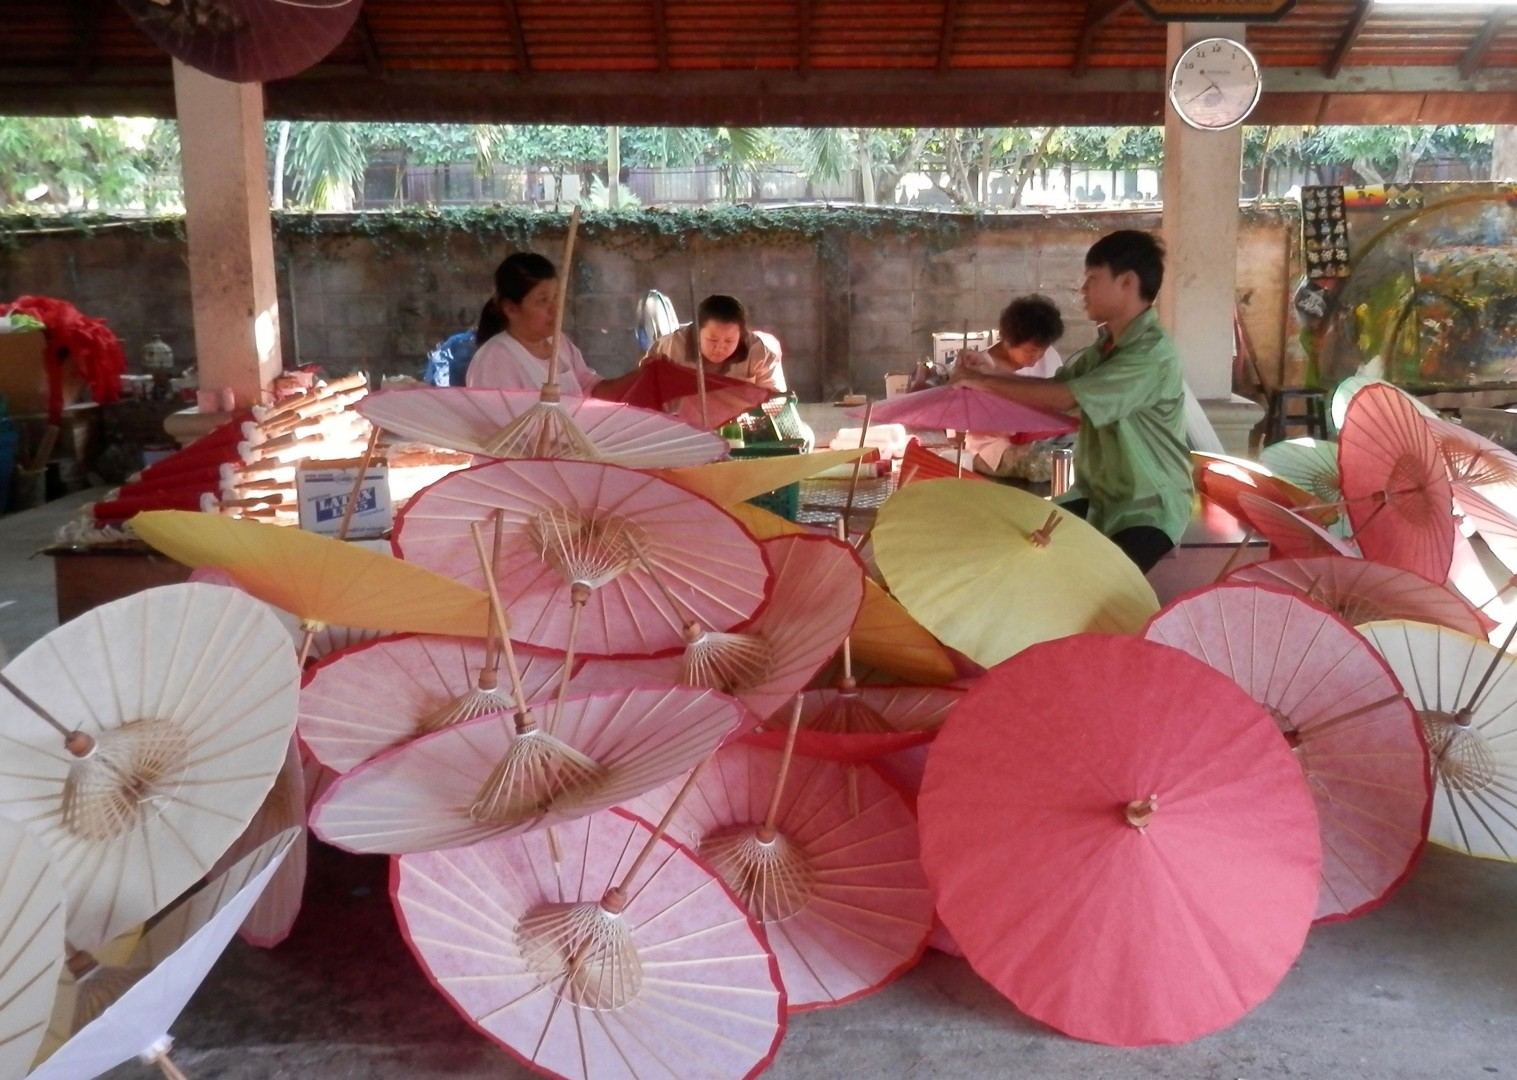 Thailand Parasol.jpg - Thailand - Meet the People Tours